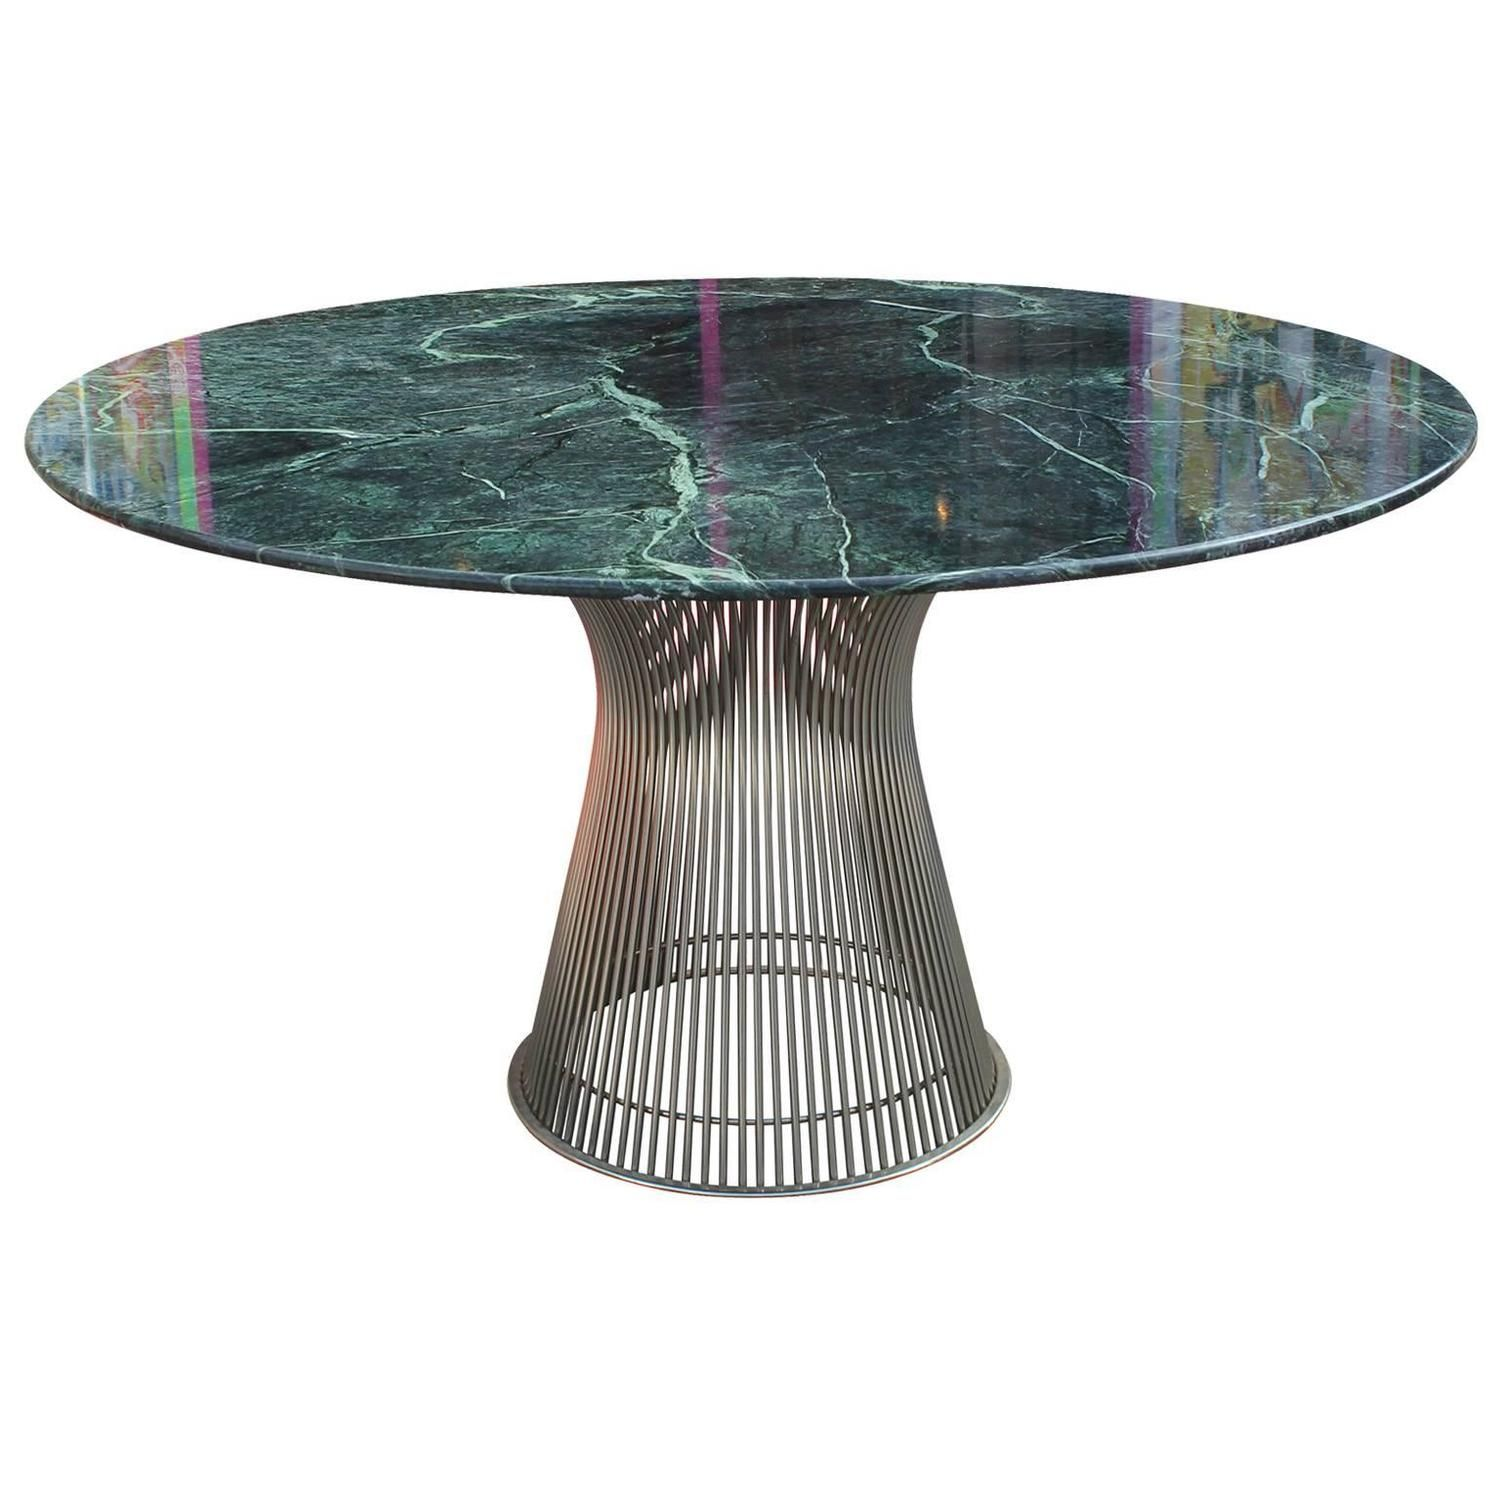 Iconic Warren Platner Dining Table with Green Marble Top | Warren ...